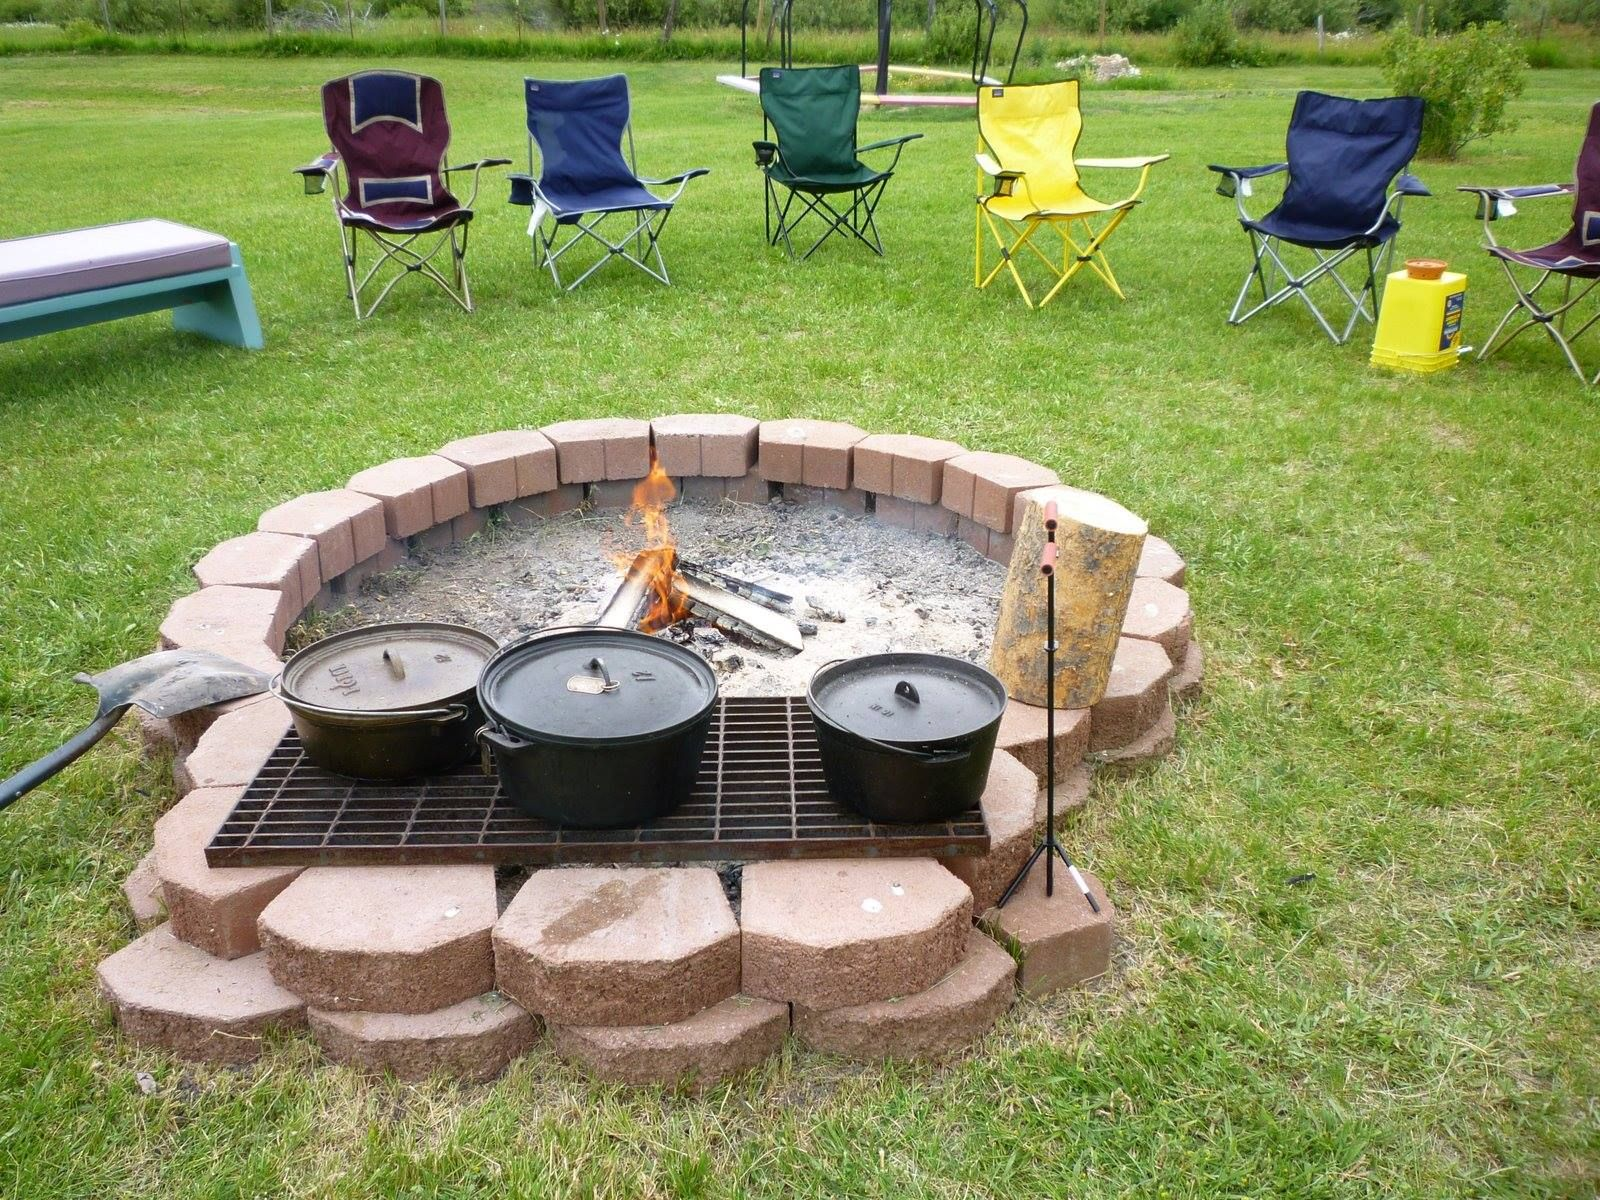 48b19802a244dbb6e6f5006868af6548 Top Result 50 Awesome Homemade Fire Pit Photos 2018 Zzt4